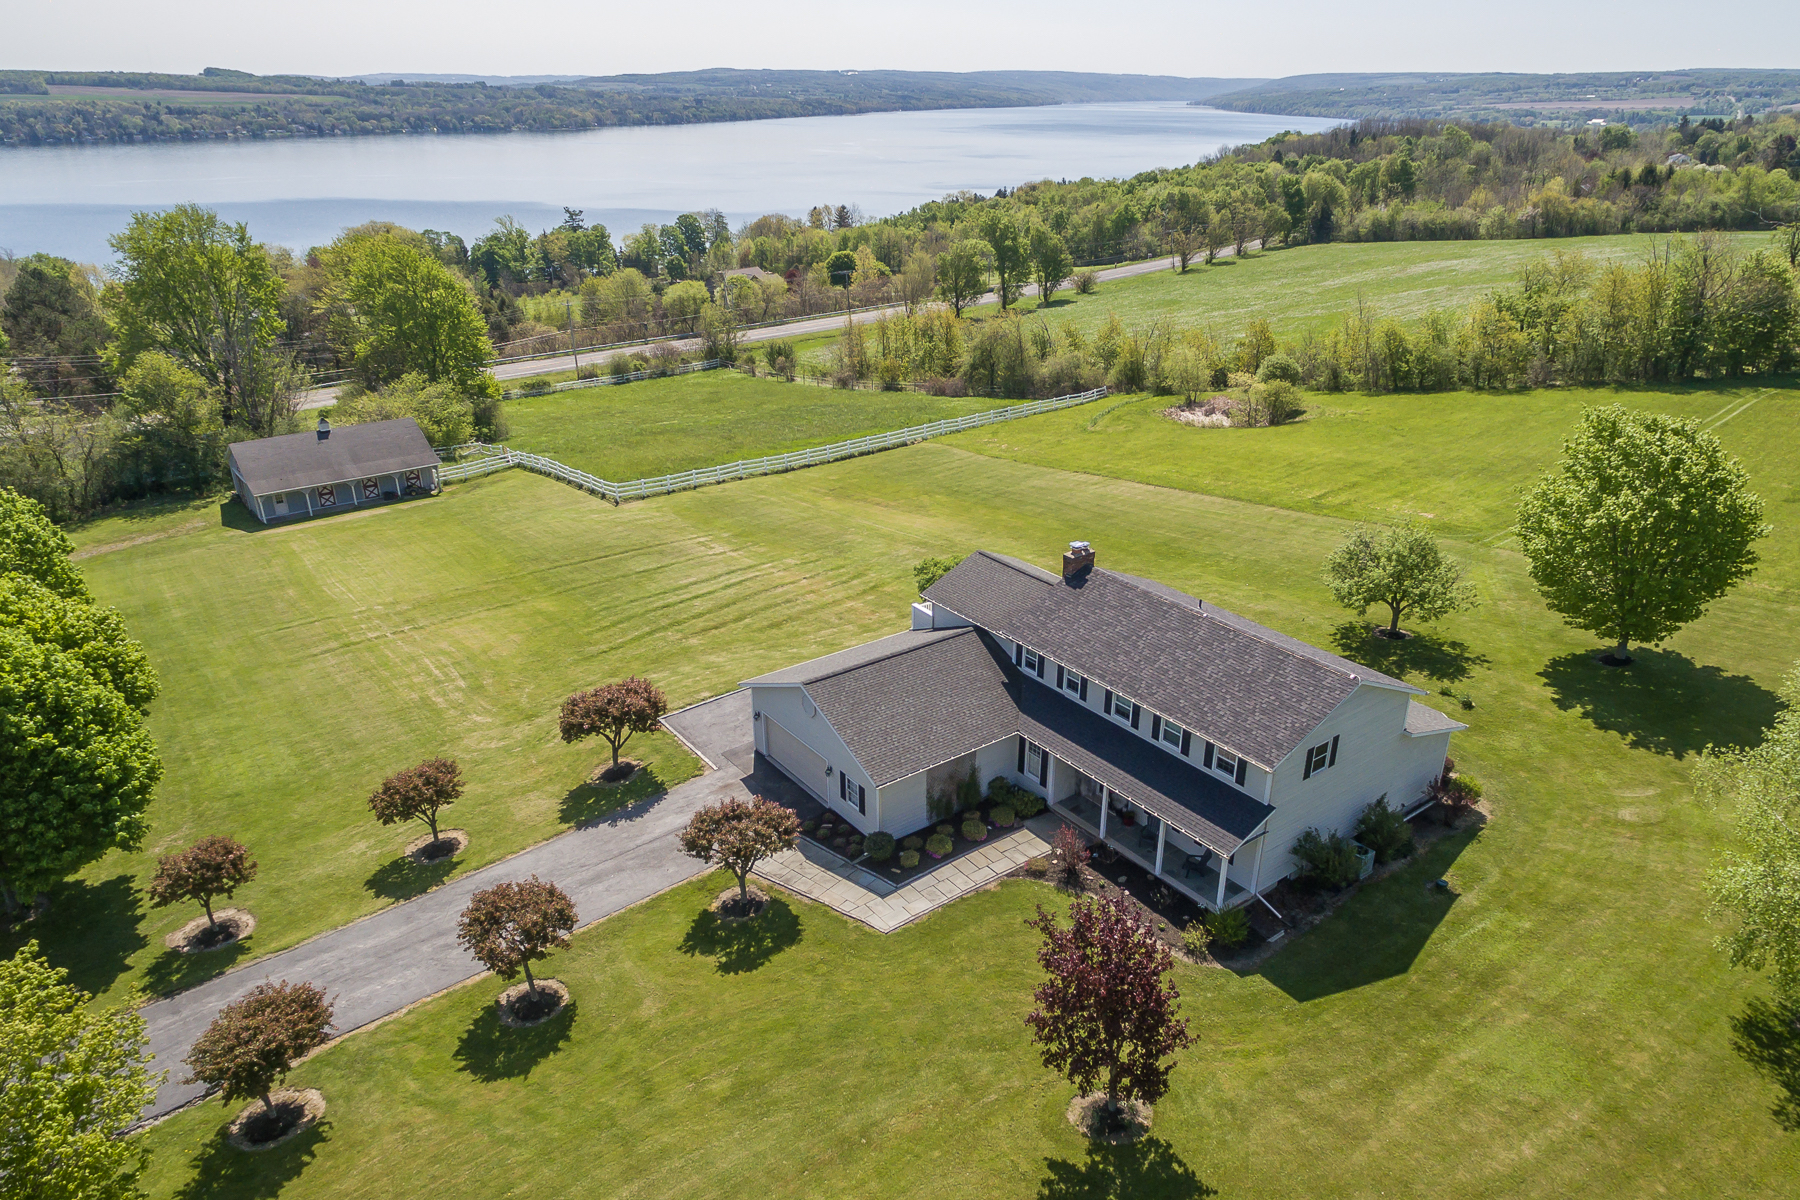 Maison unifamiliale pour l Vente à Skaneateles Lake Views on 5.5 Acres 1300 Hencoop Rd Skaneateles, New York 13152 États-Unis